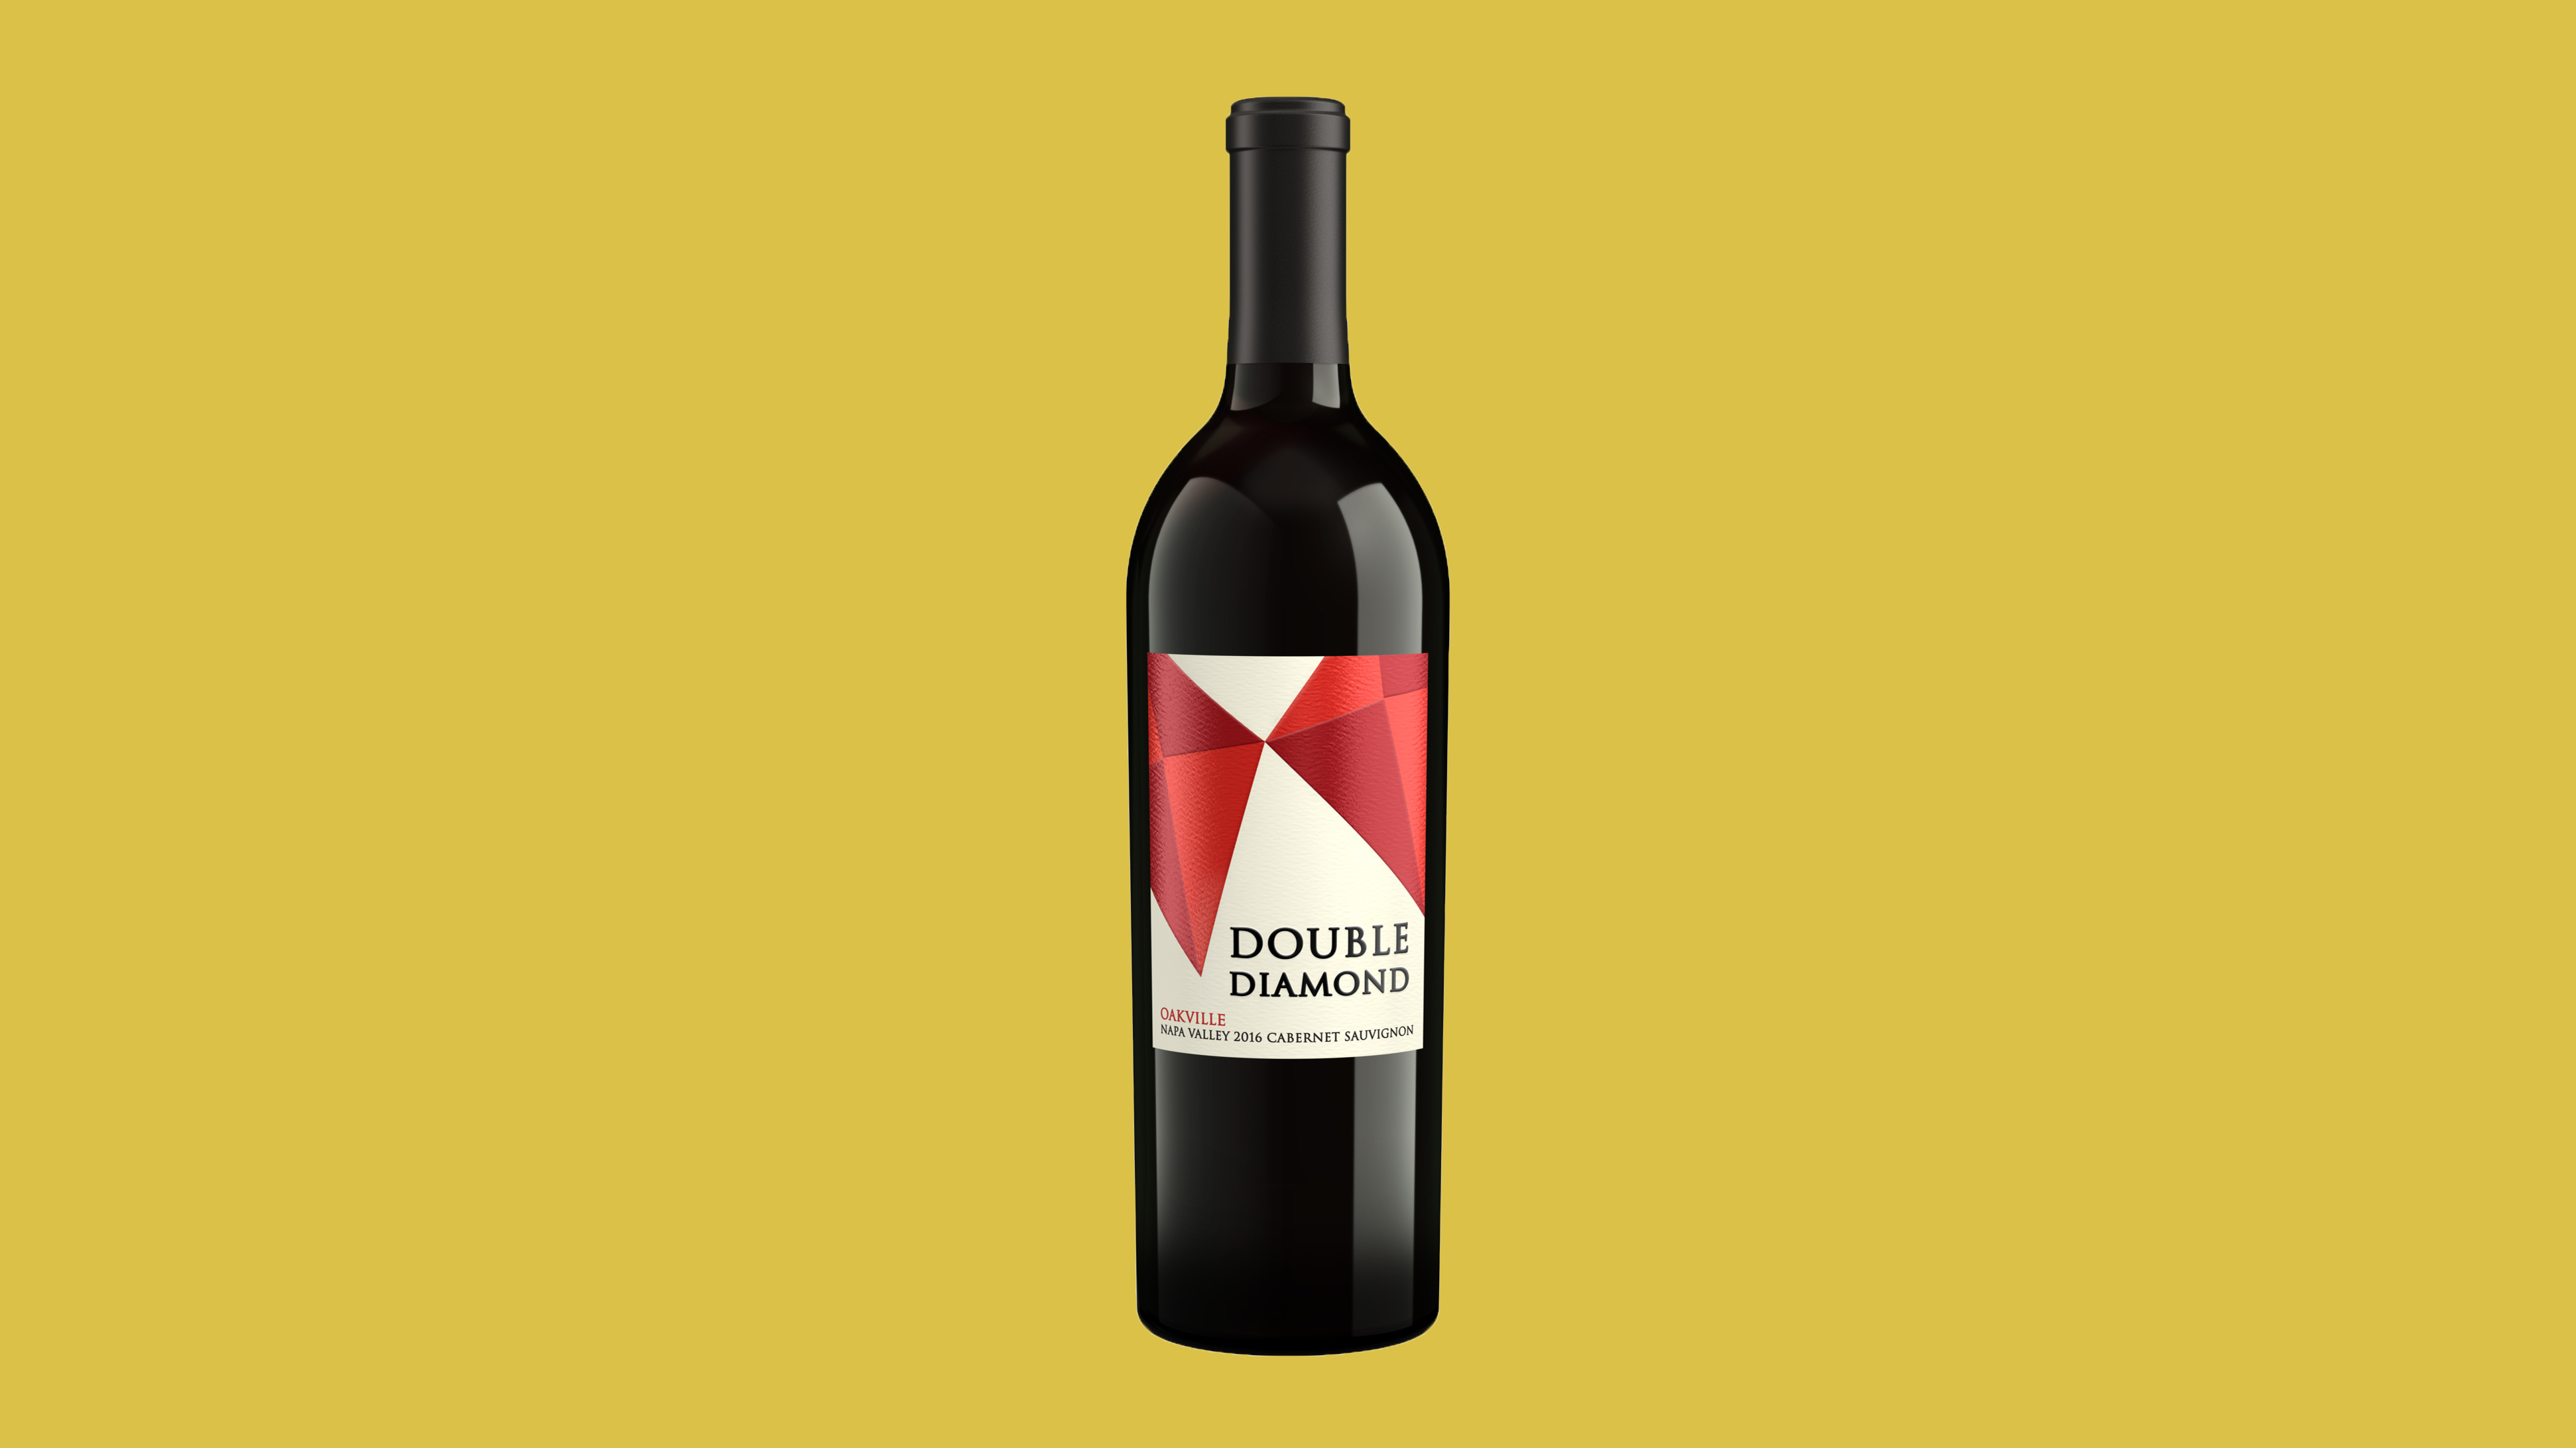 Double Diamond Oakville Cabernet Sauvignon 2016 wine